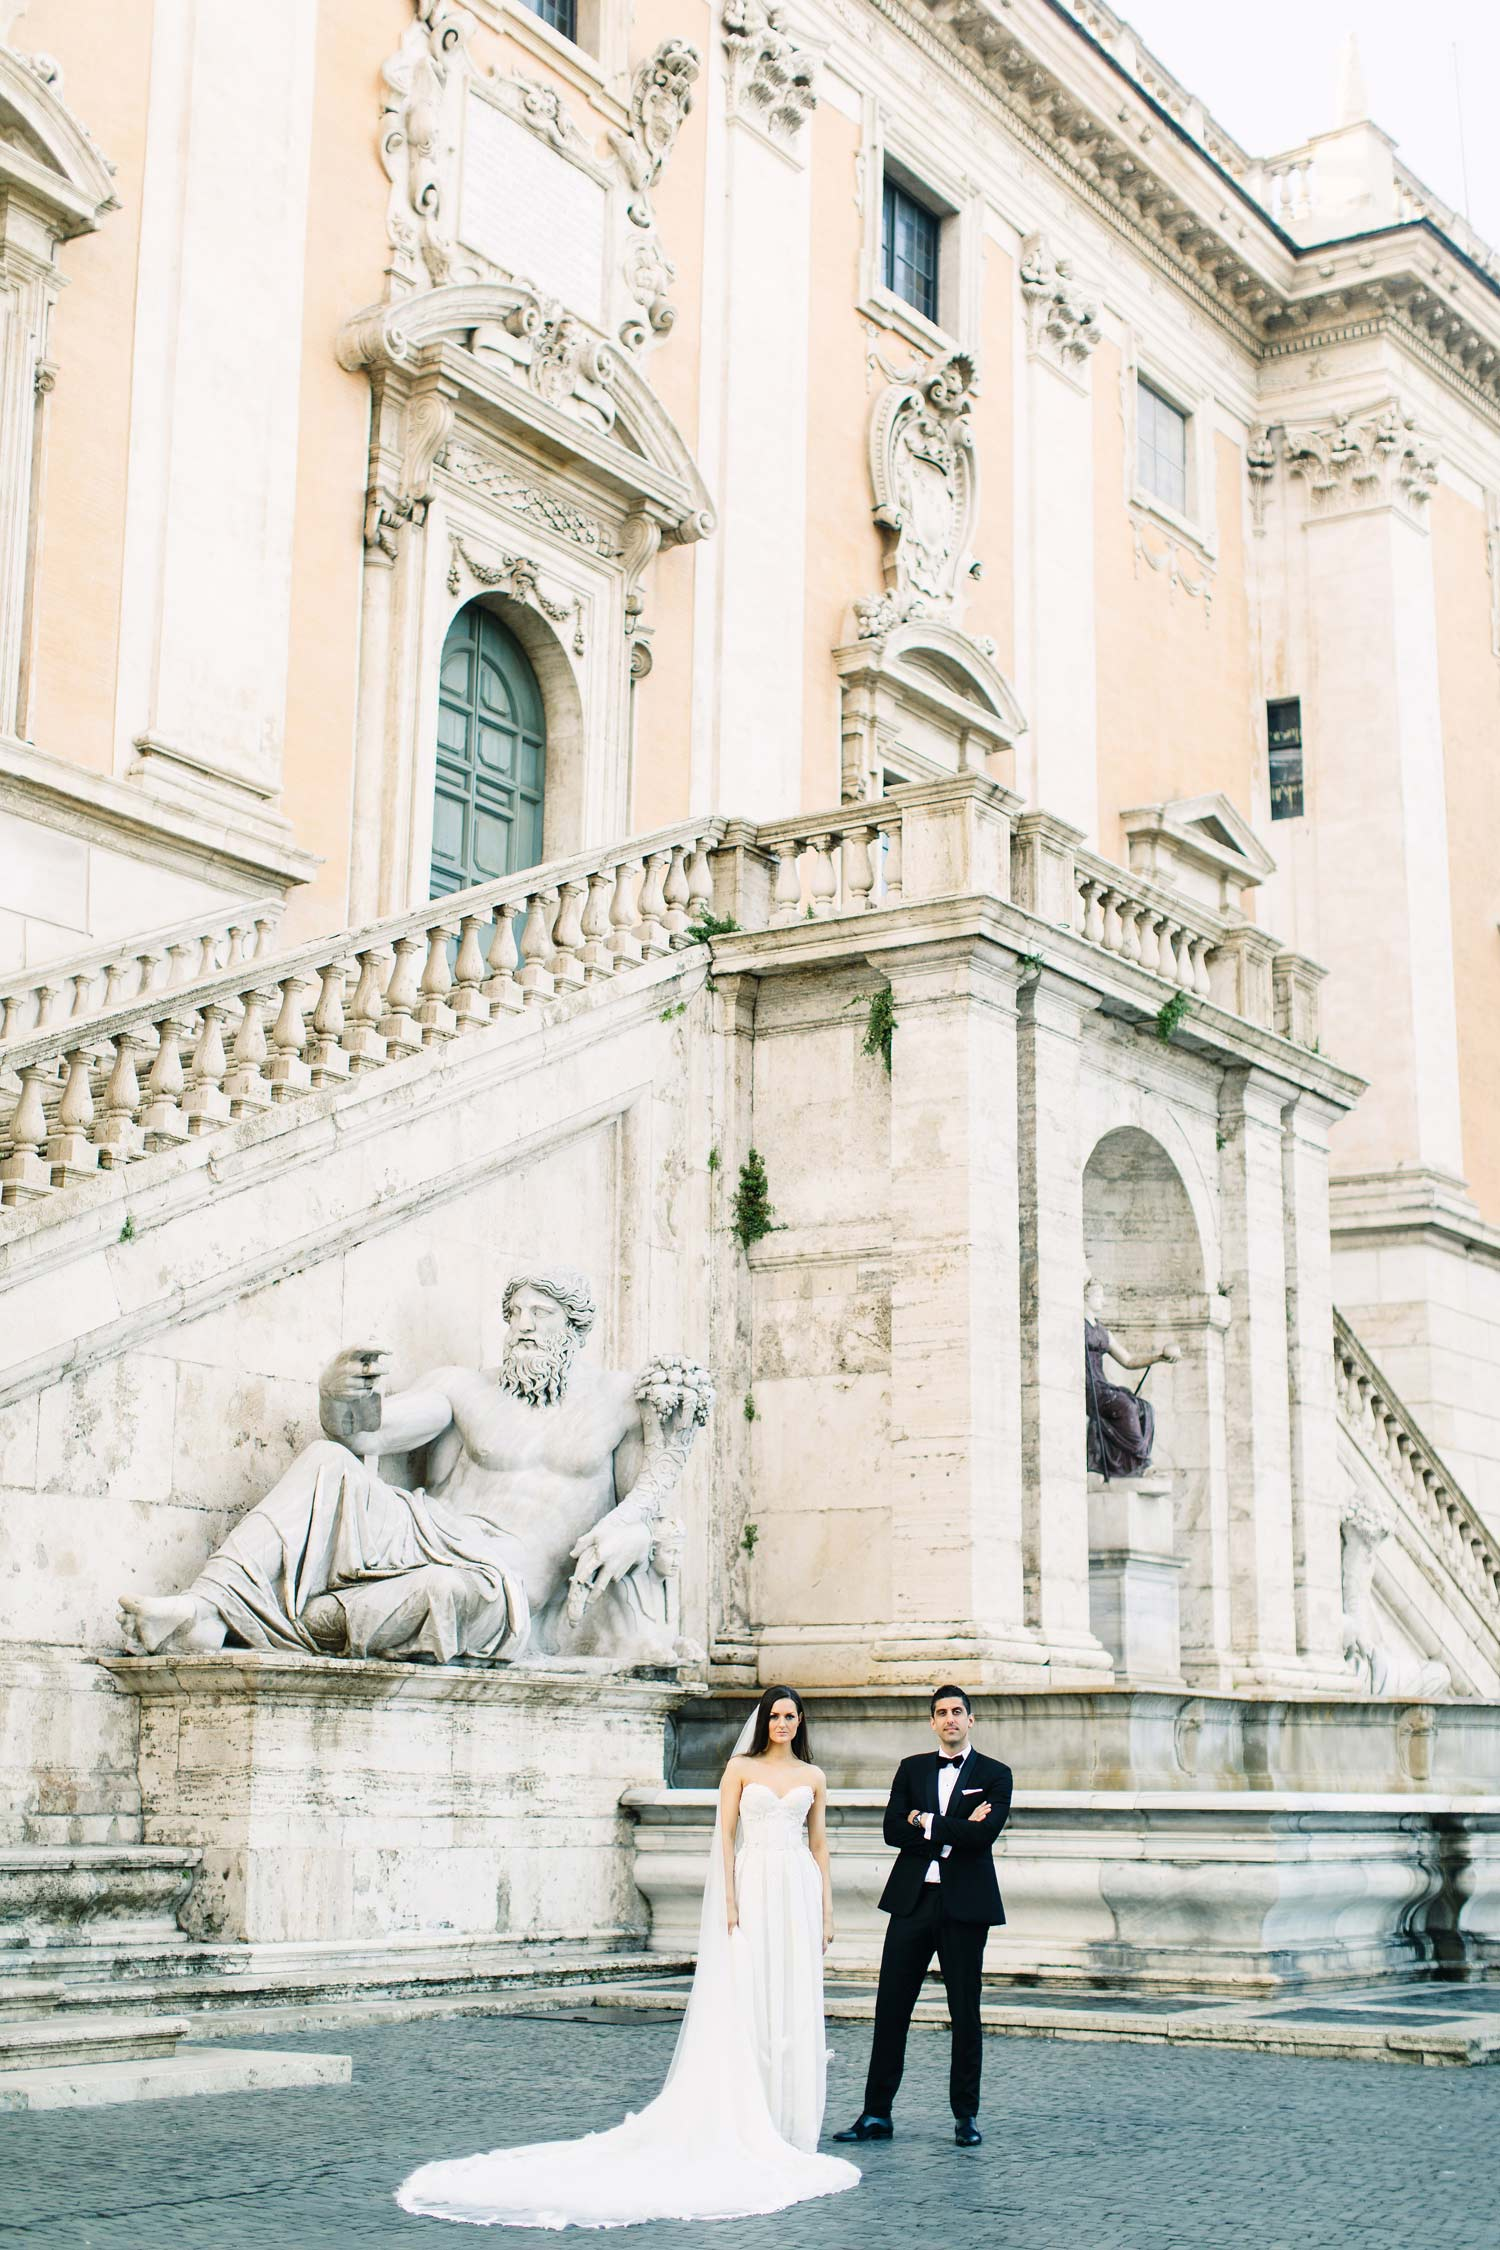 004-rome-wedding-photographer.jpg